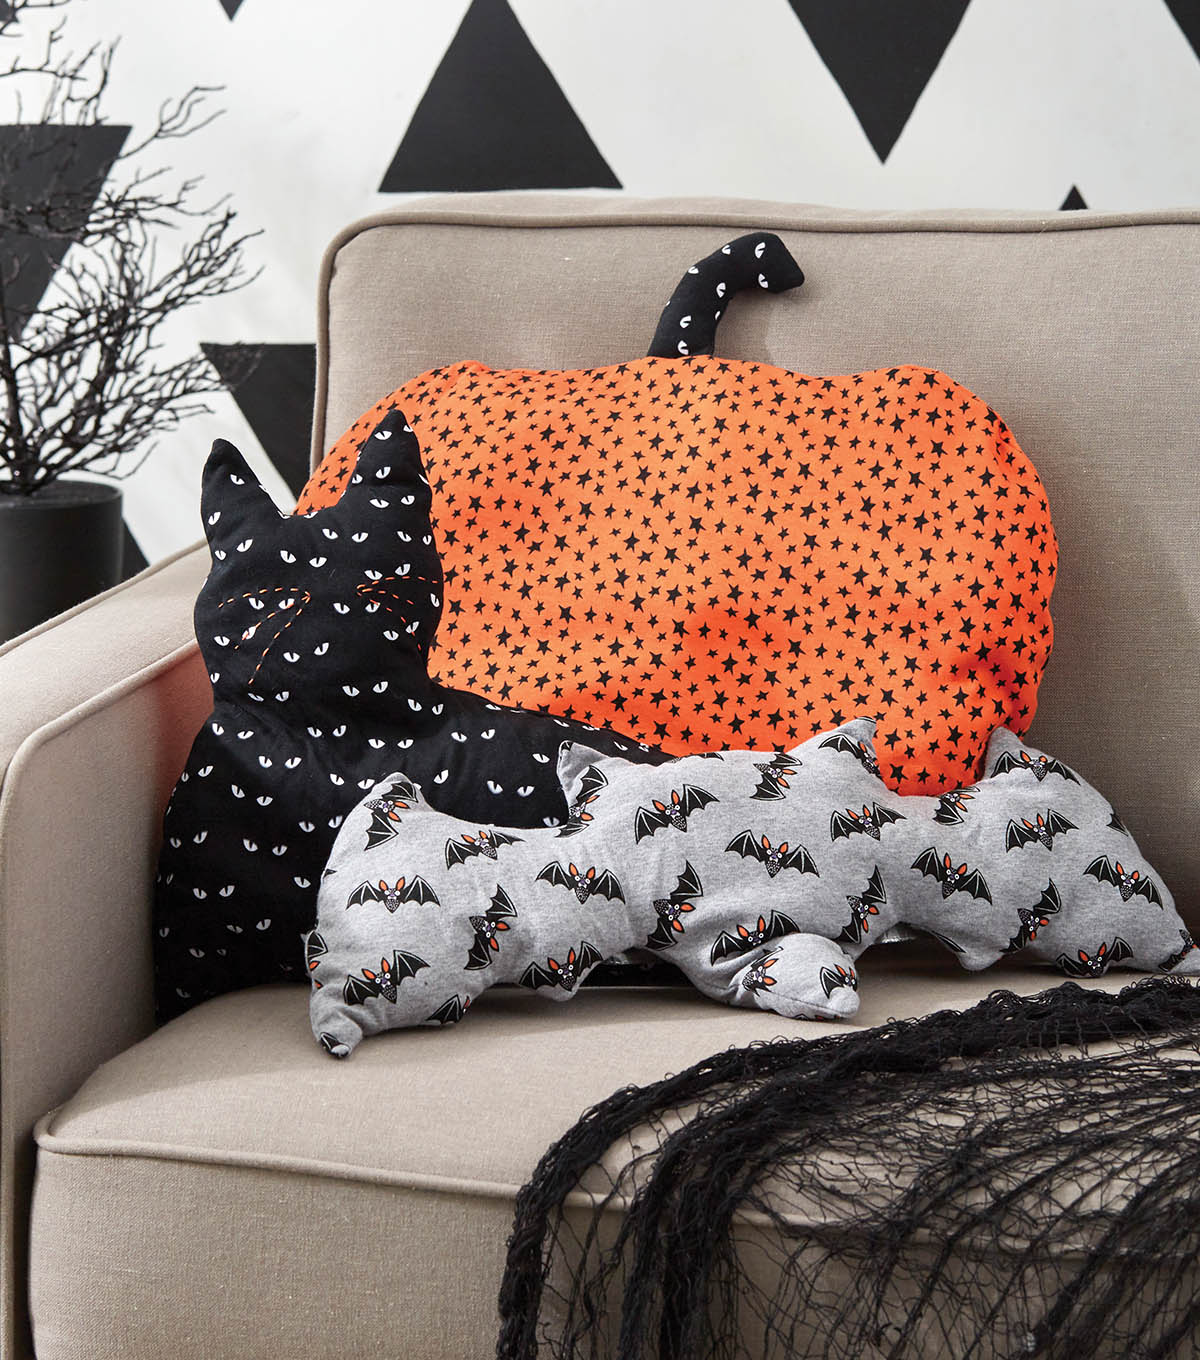 how to make a halloween pillow | joann